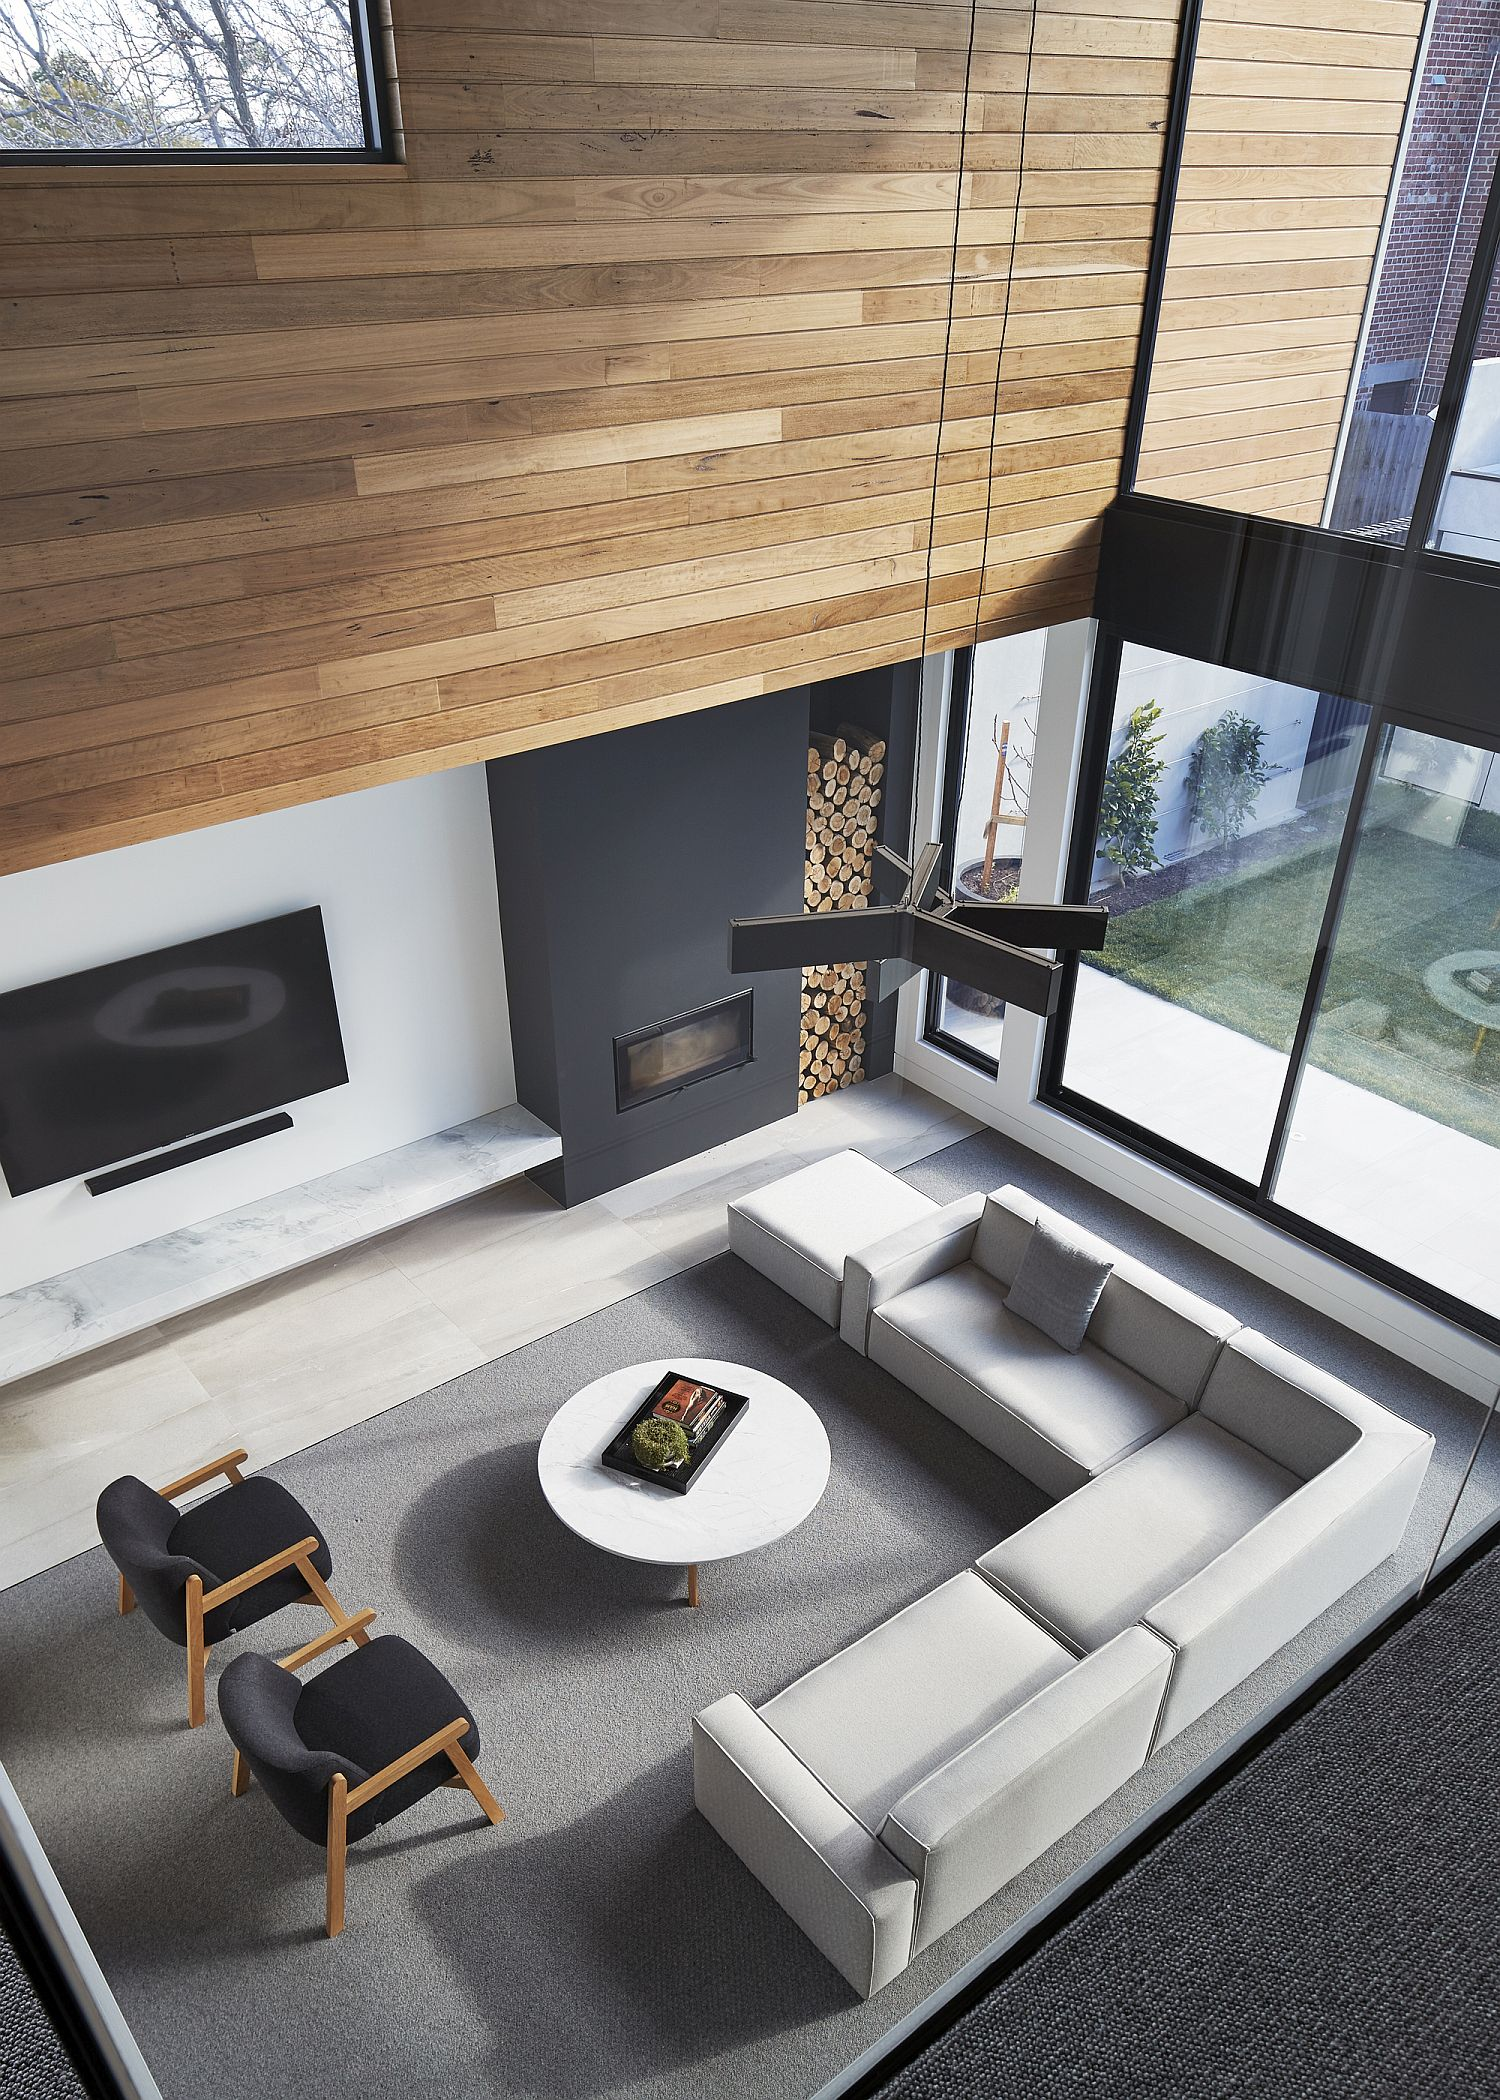 View-of-the-double-height-living-area-with-gray-fireplace-and-slim-TV-unit